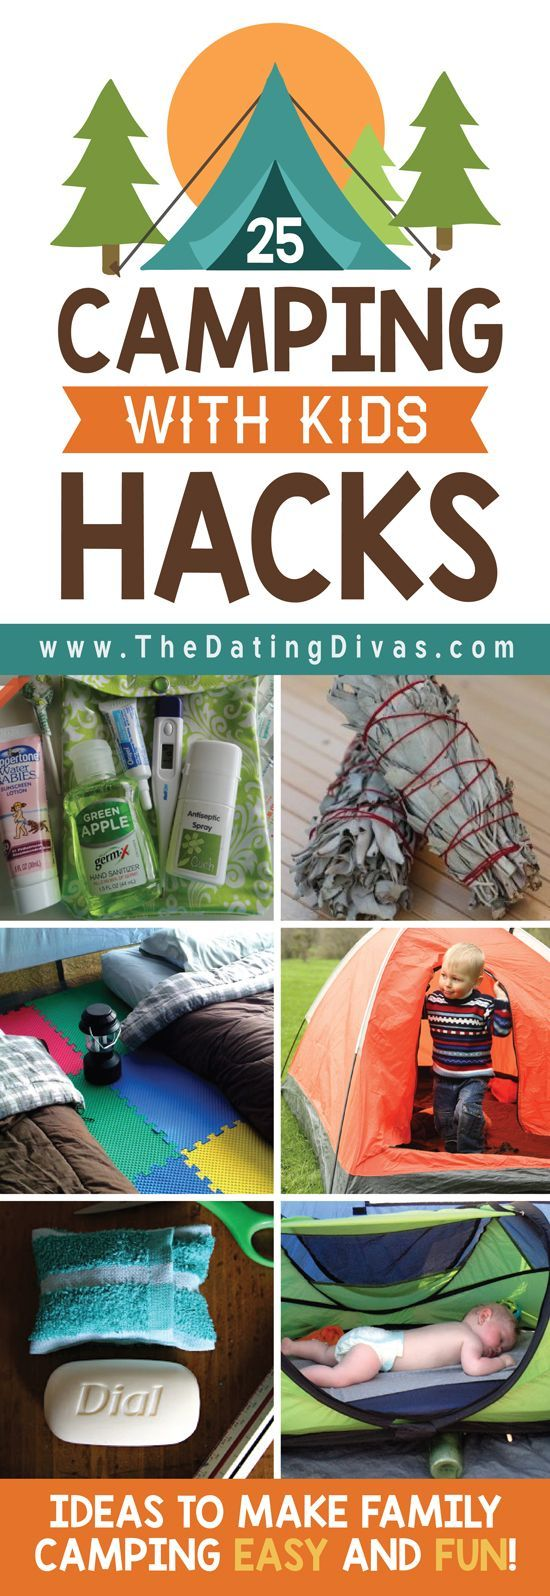 I love family camping and these tips are AWESOME! I can't way to go! http://www.TheDatingDivas.com